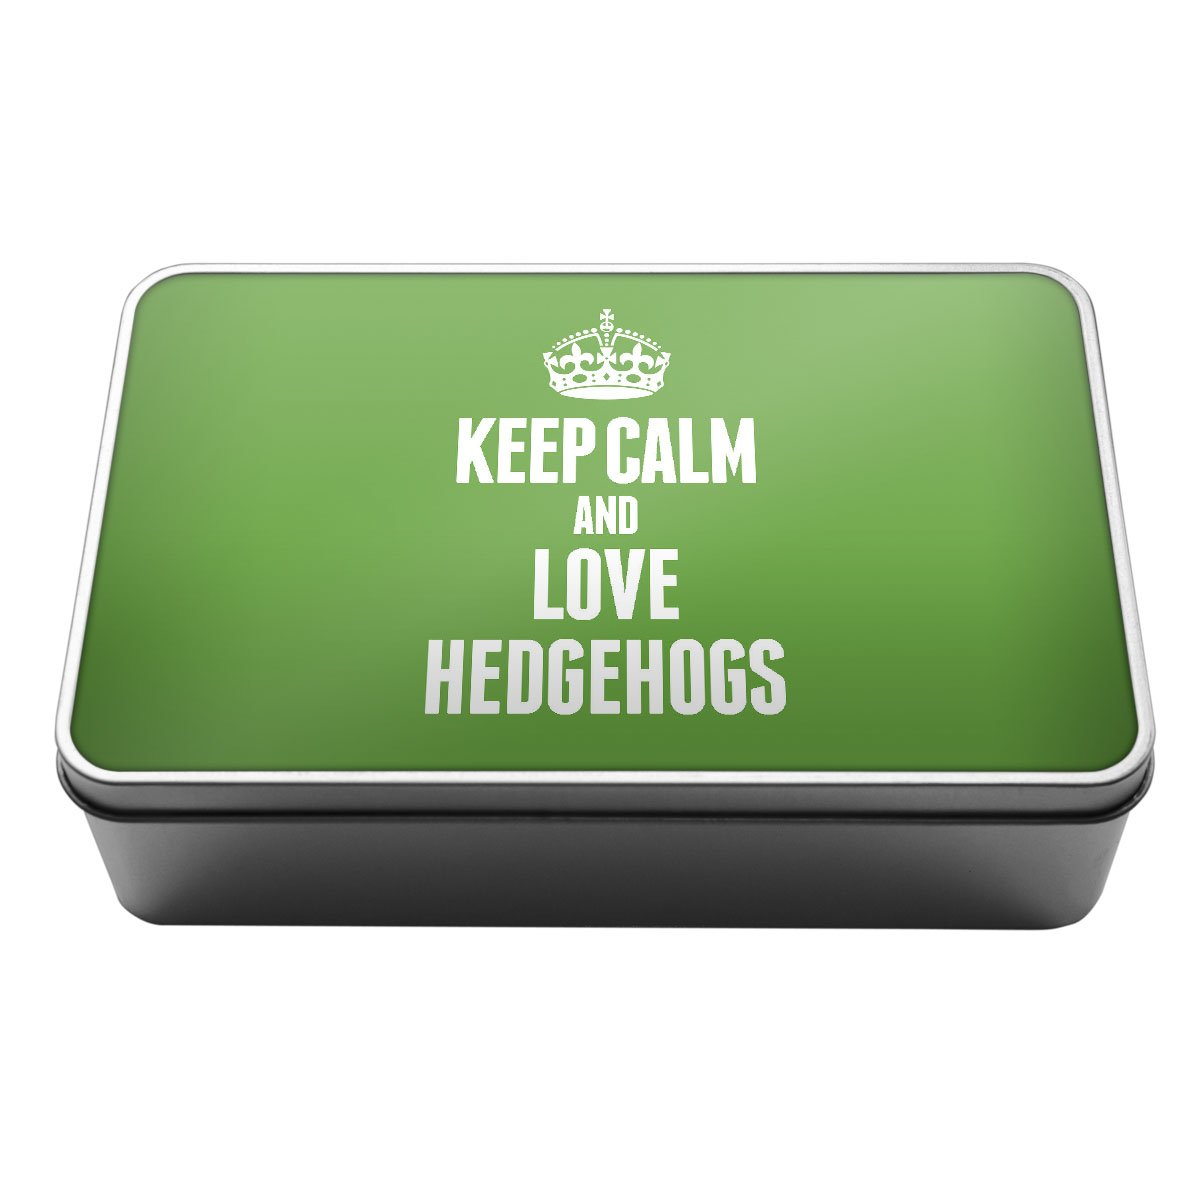 GREEN Keep Calm and Love Hedgehogs Metal Storage Tin Box 2436 Duke Gifts